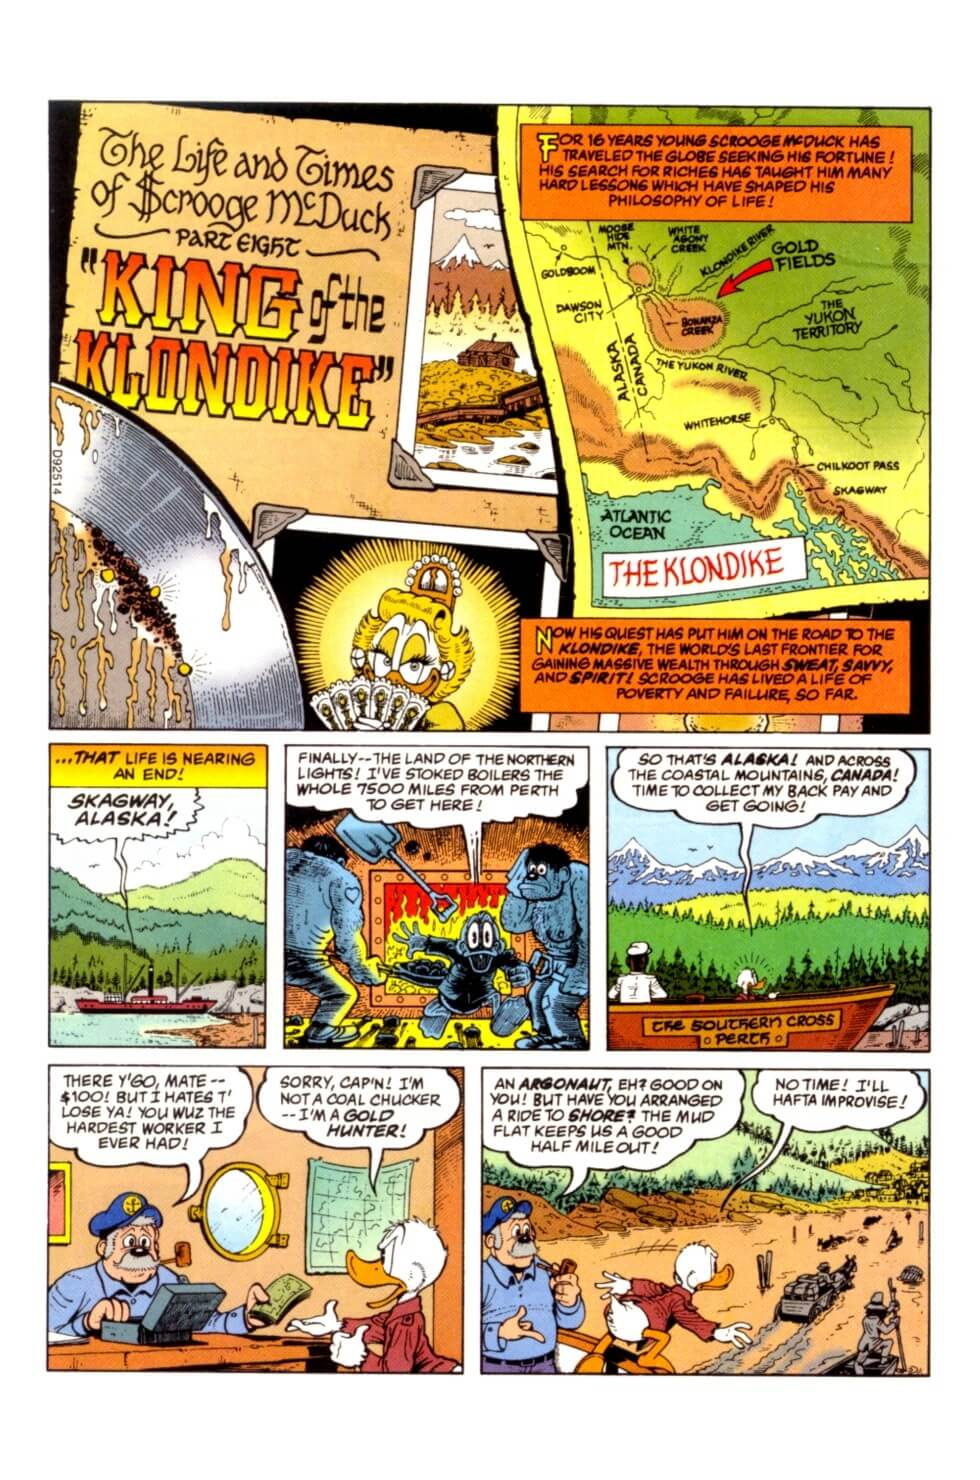 Chapter 08 - King of the Klondike first page